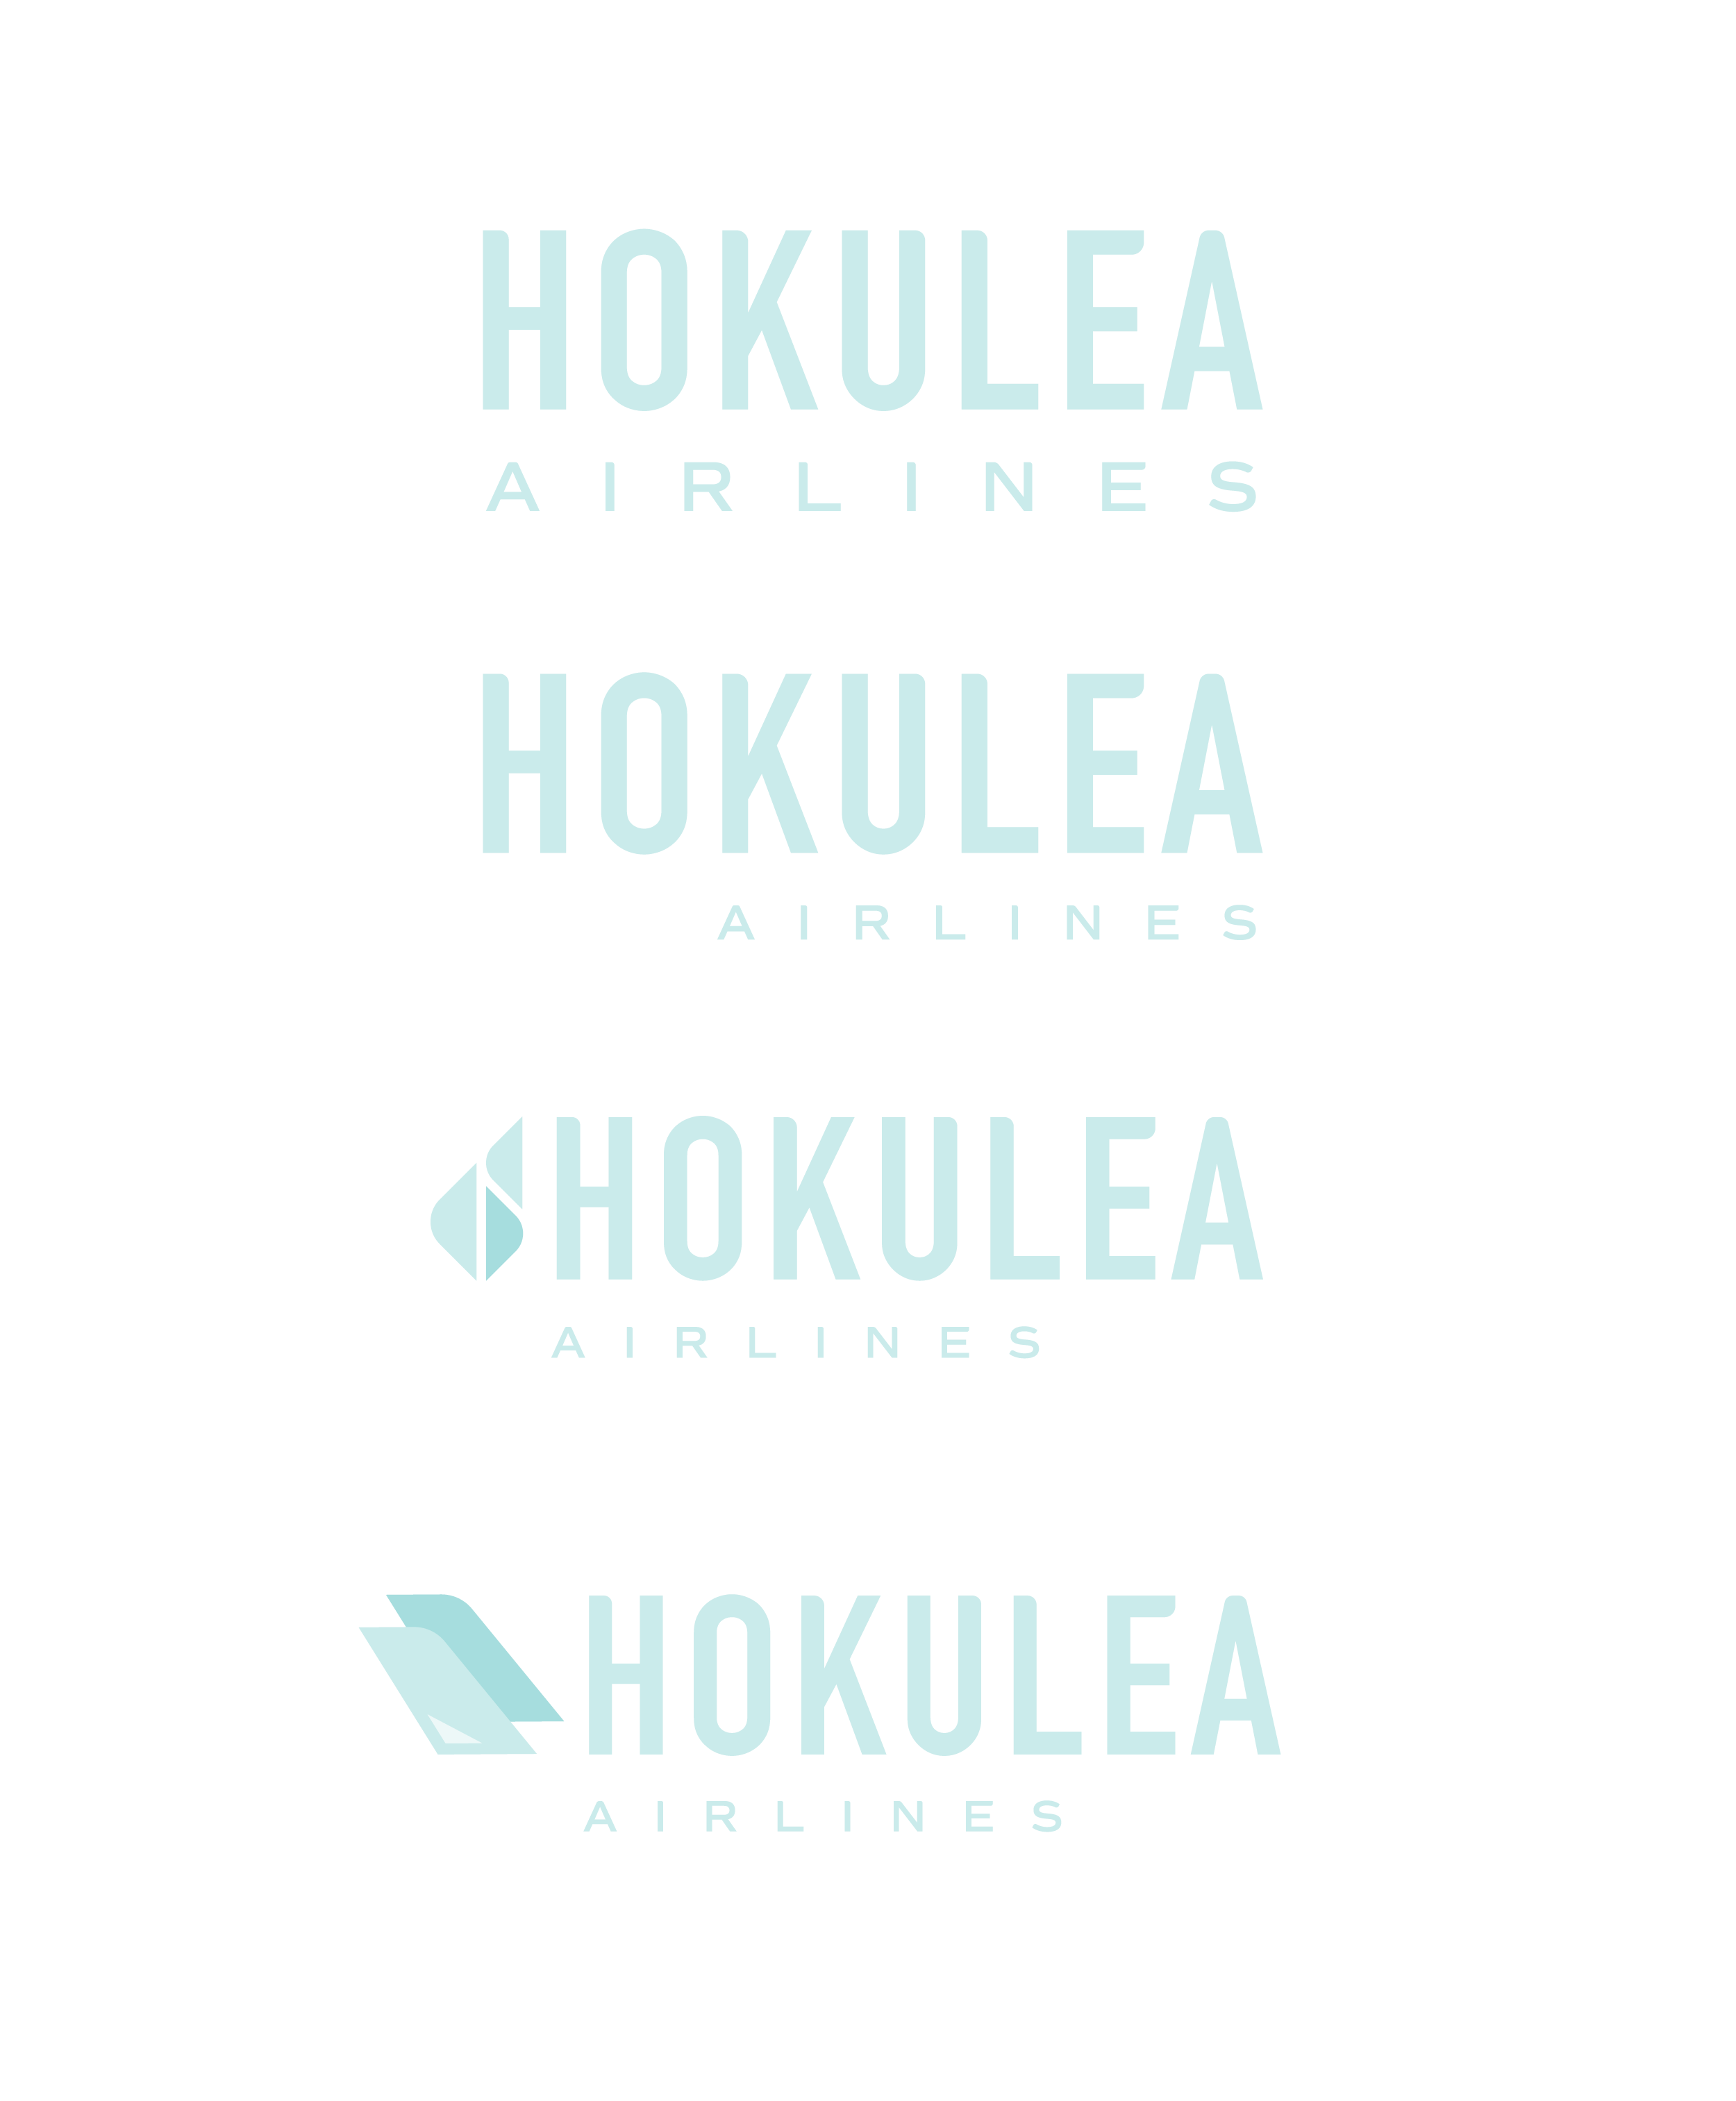 various iterations of the hokulea logo